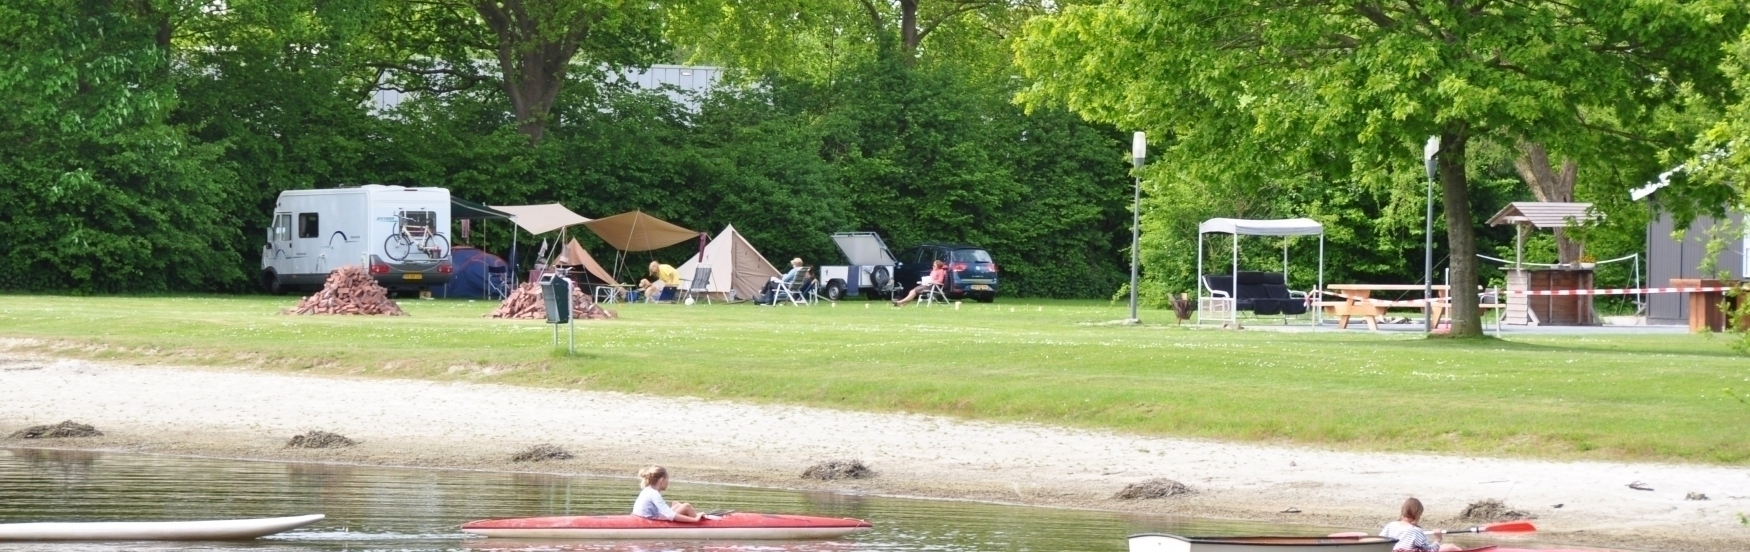 Camping|Boek direct!|#ef7d00